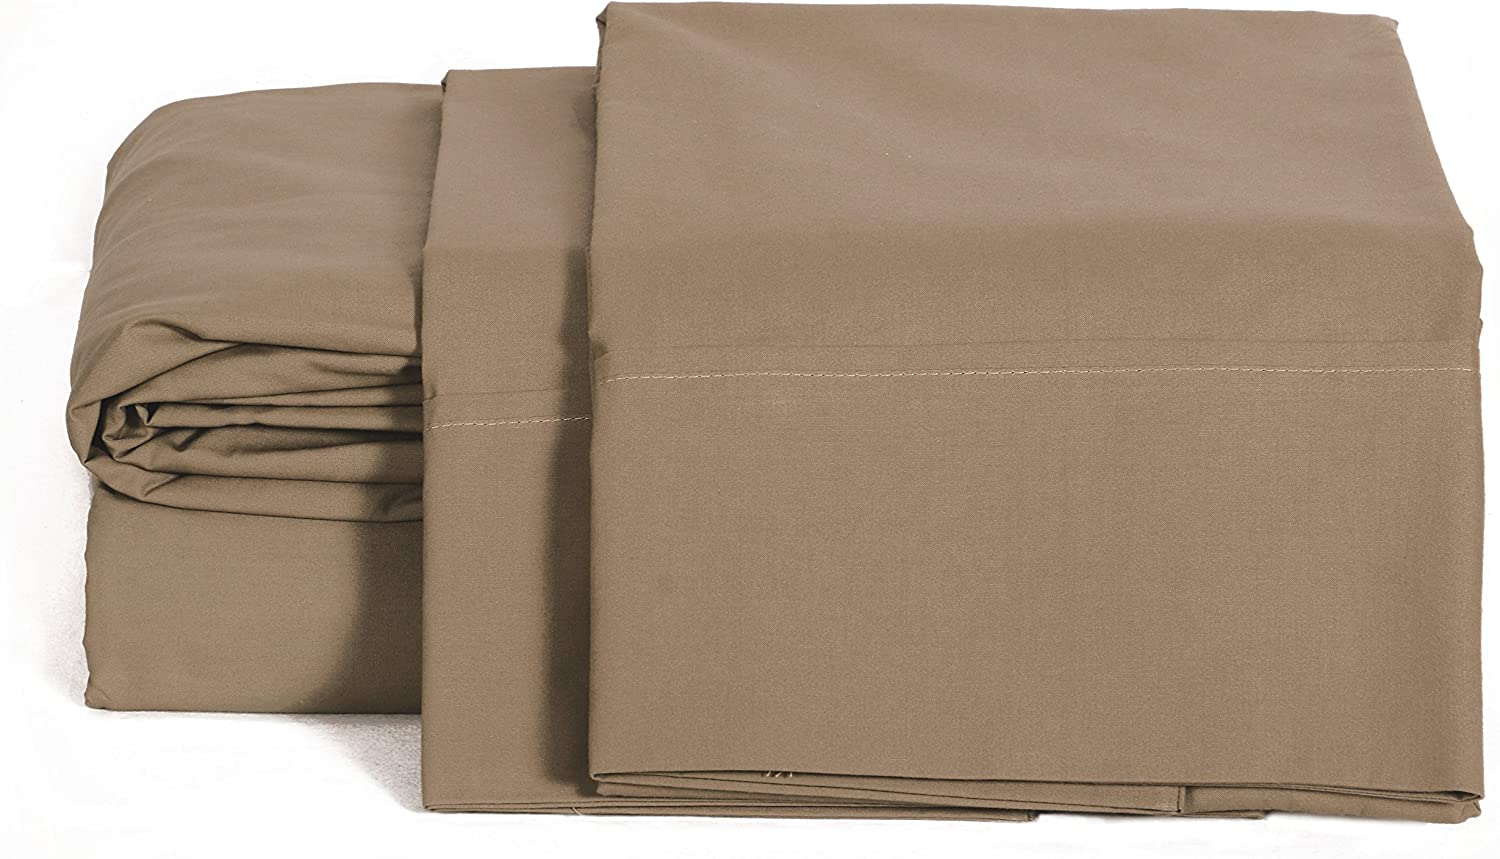 100% Cotton Percale Sheets King Size, Taupe, Deep Pocket, 4 Piece - 1 Flat, 1 Deep Pocket Fitted Sheet and 2 Pillowcases, Crisp and Strong Bed Linen